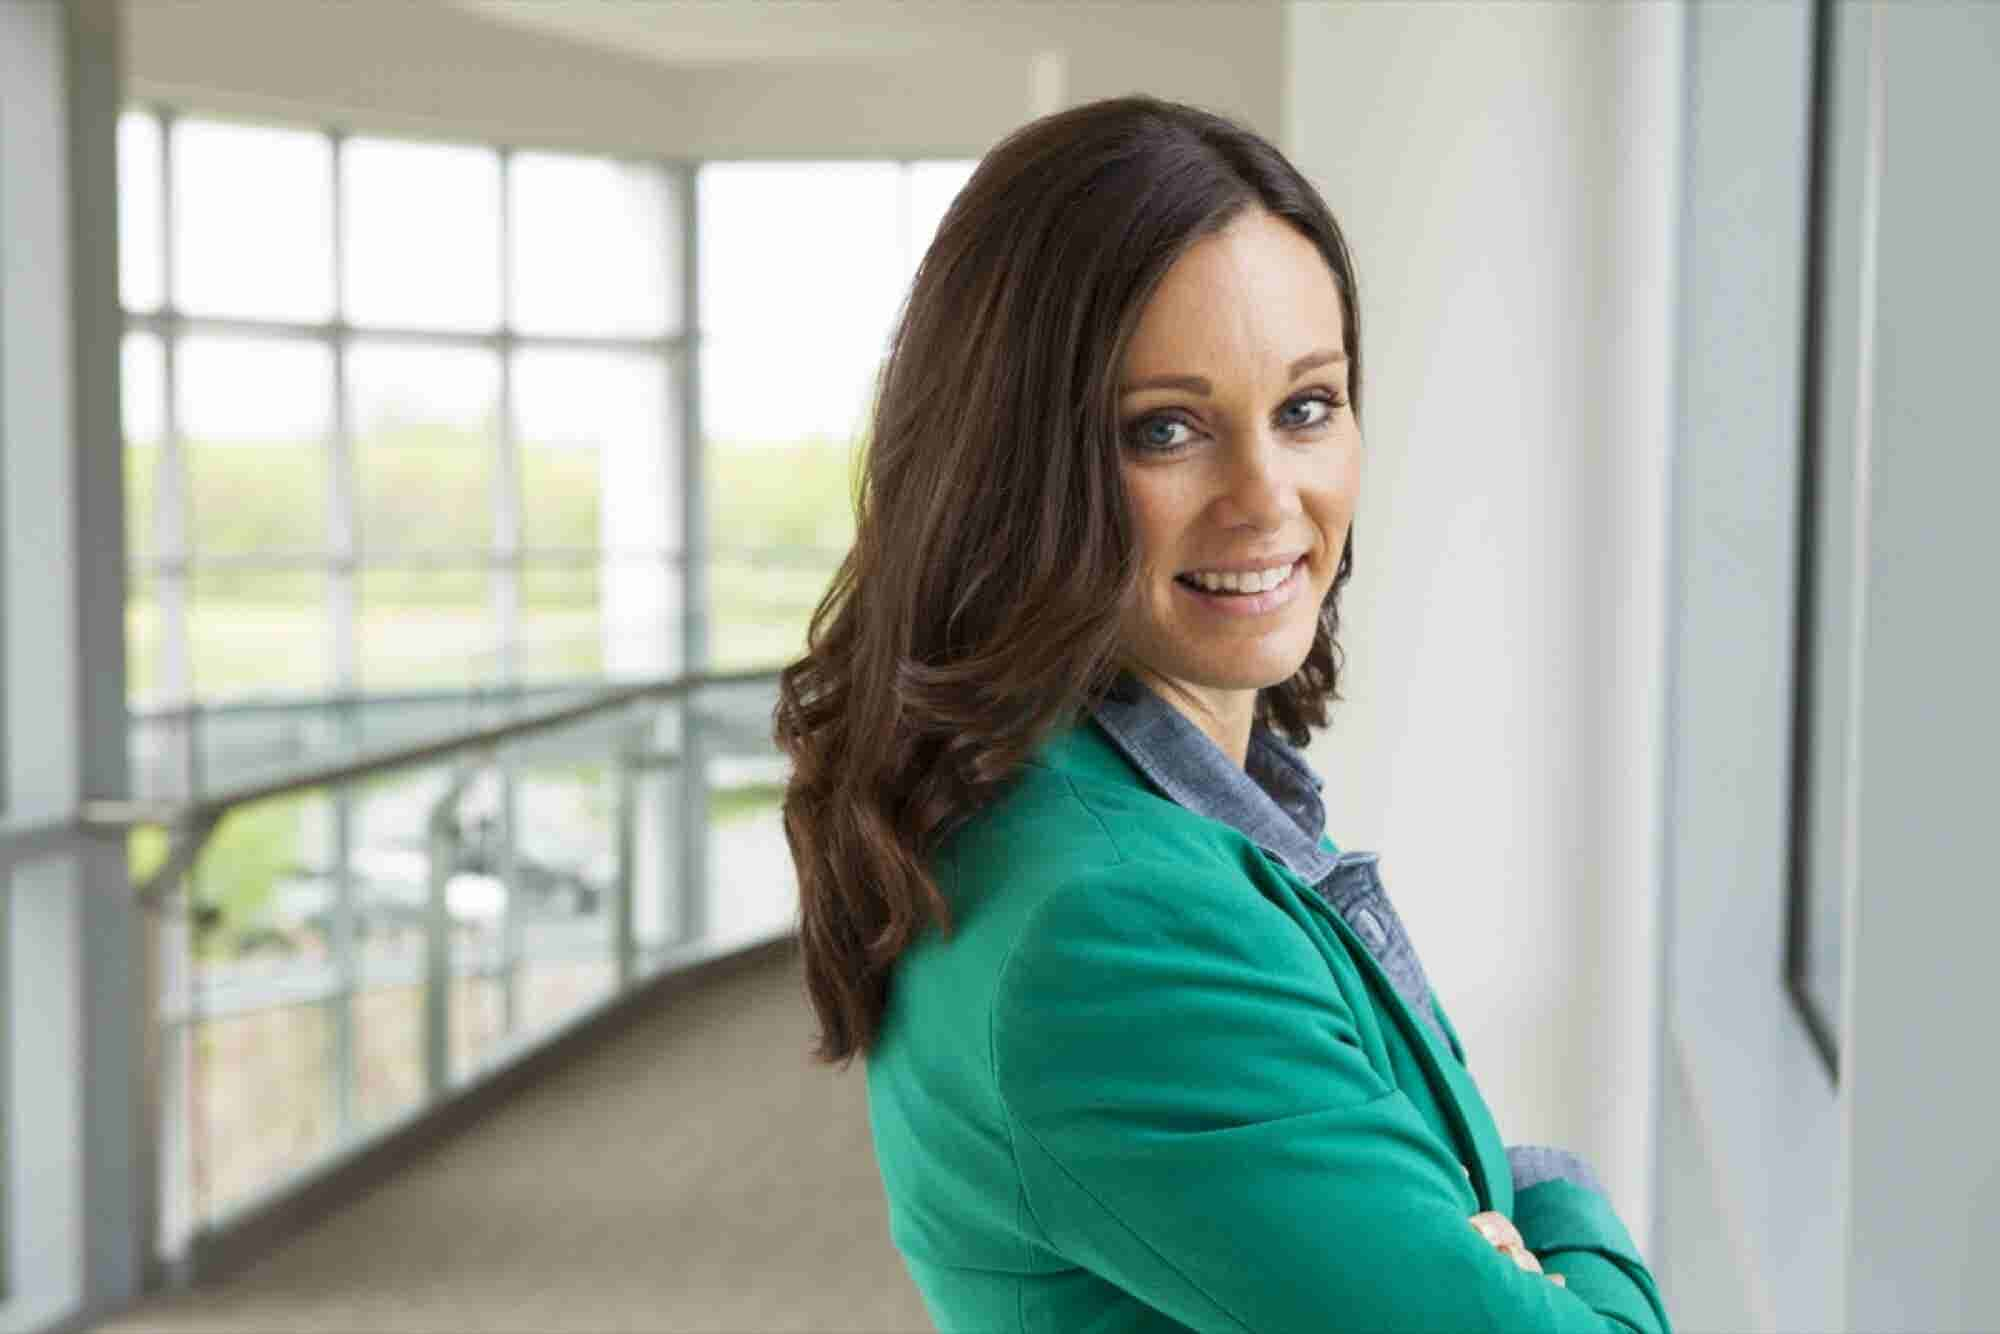 Have a Burning Business Question? Ask Our PR Expert: Lindsey Groepper.